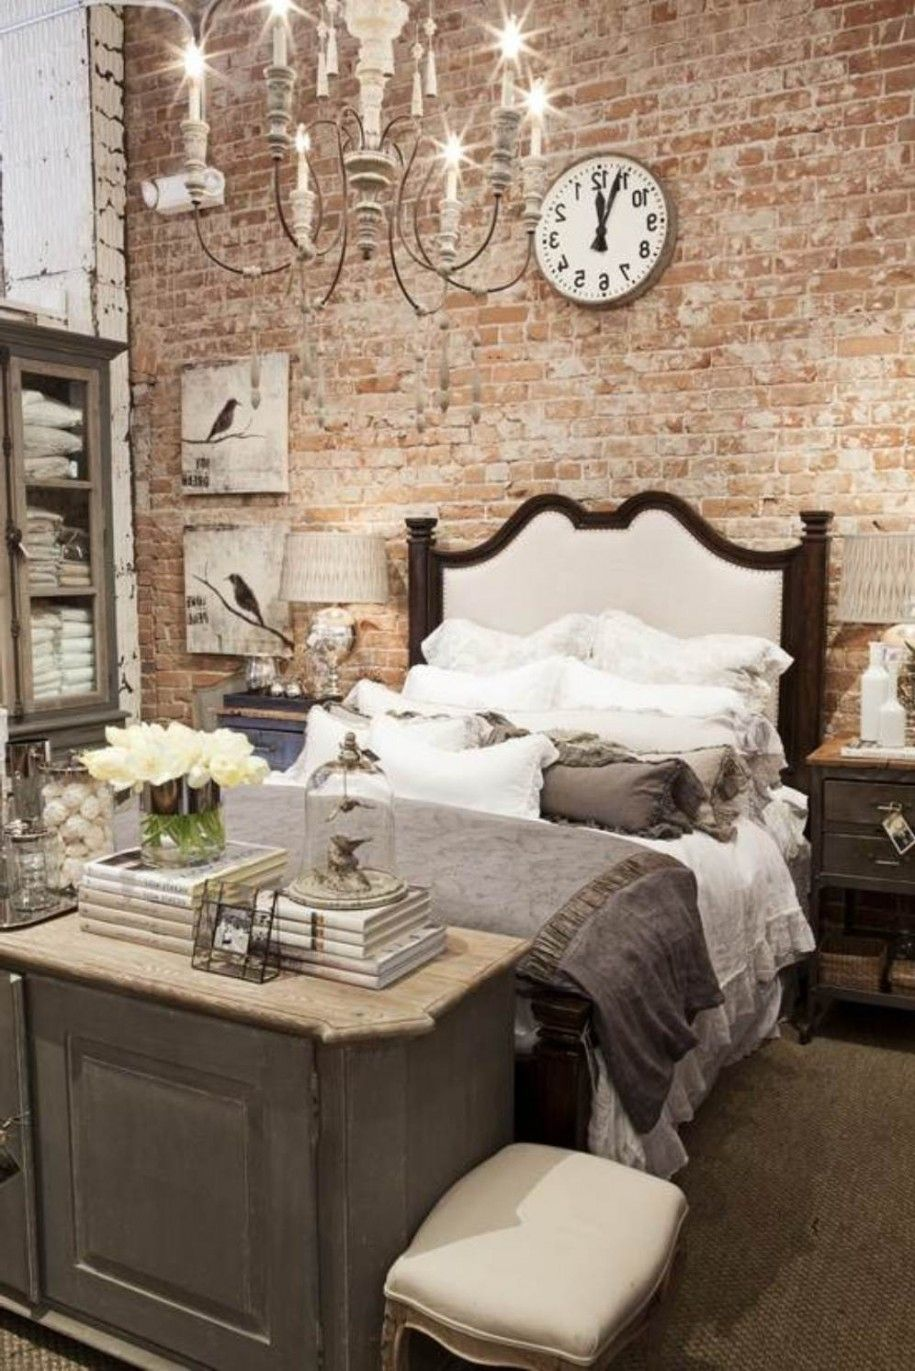 Best Romantic Bedroom Decorating Ideas Bedroom Rustic Design 400 x 300